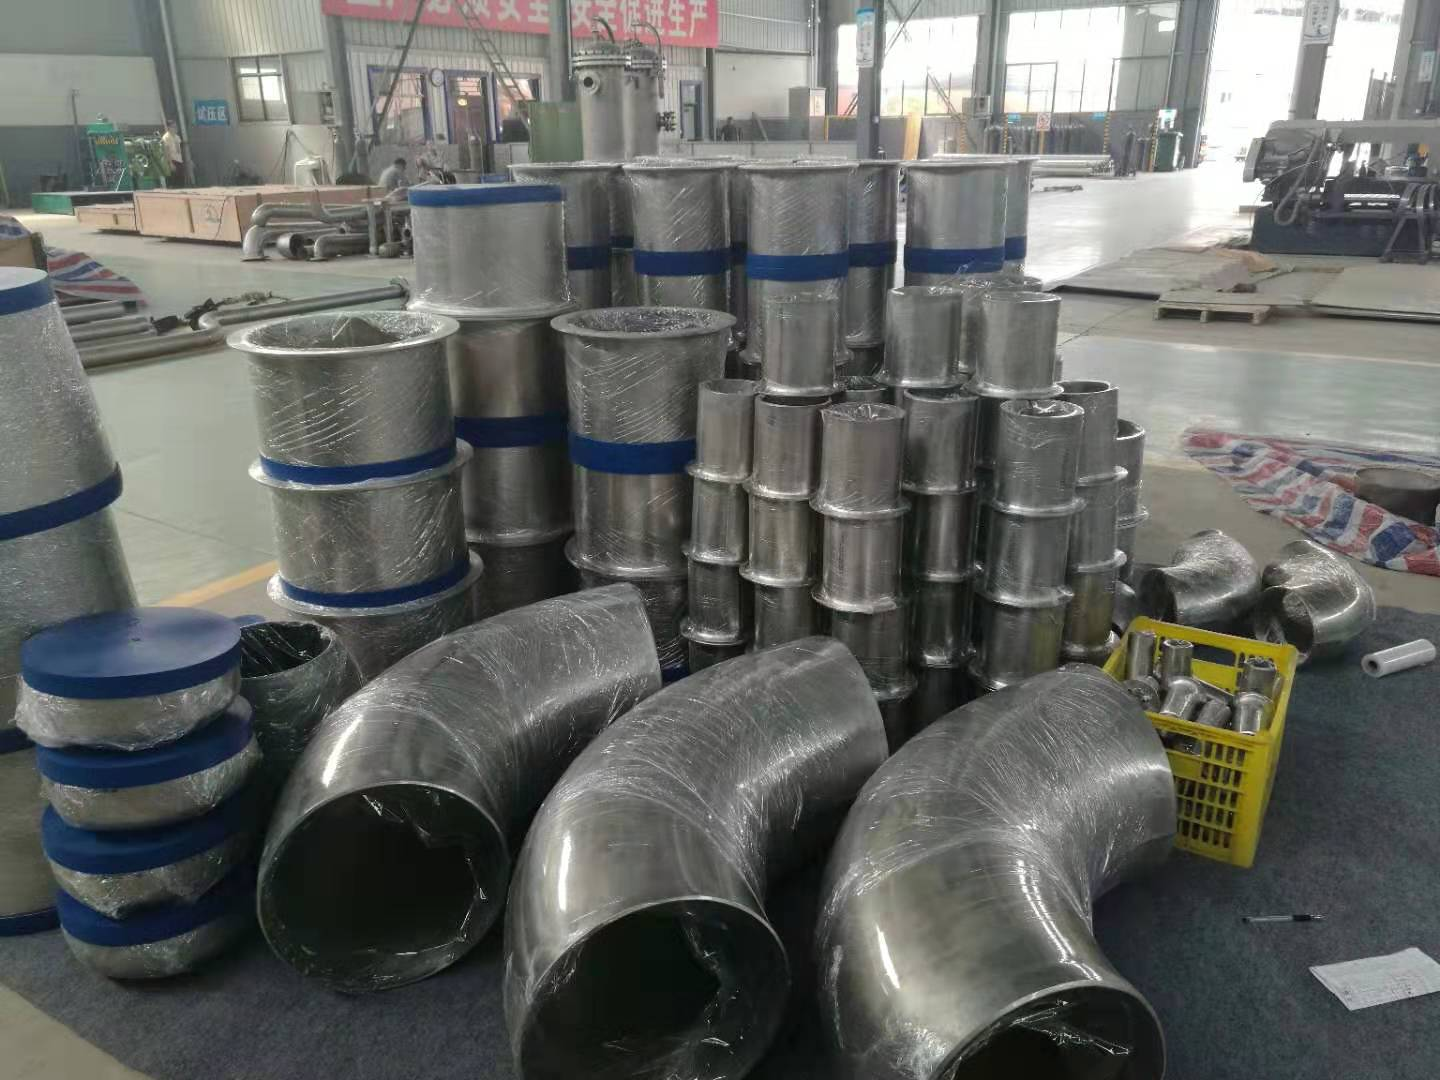 Titanium Welded Tube And Titanium Pipe Fittings GR1 GR2 GR7 GR12 ASTM B862 OR ASME B16.9